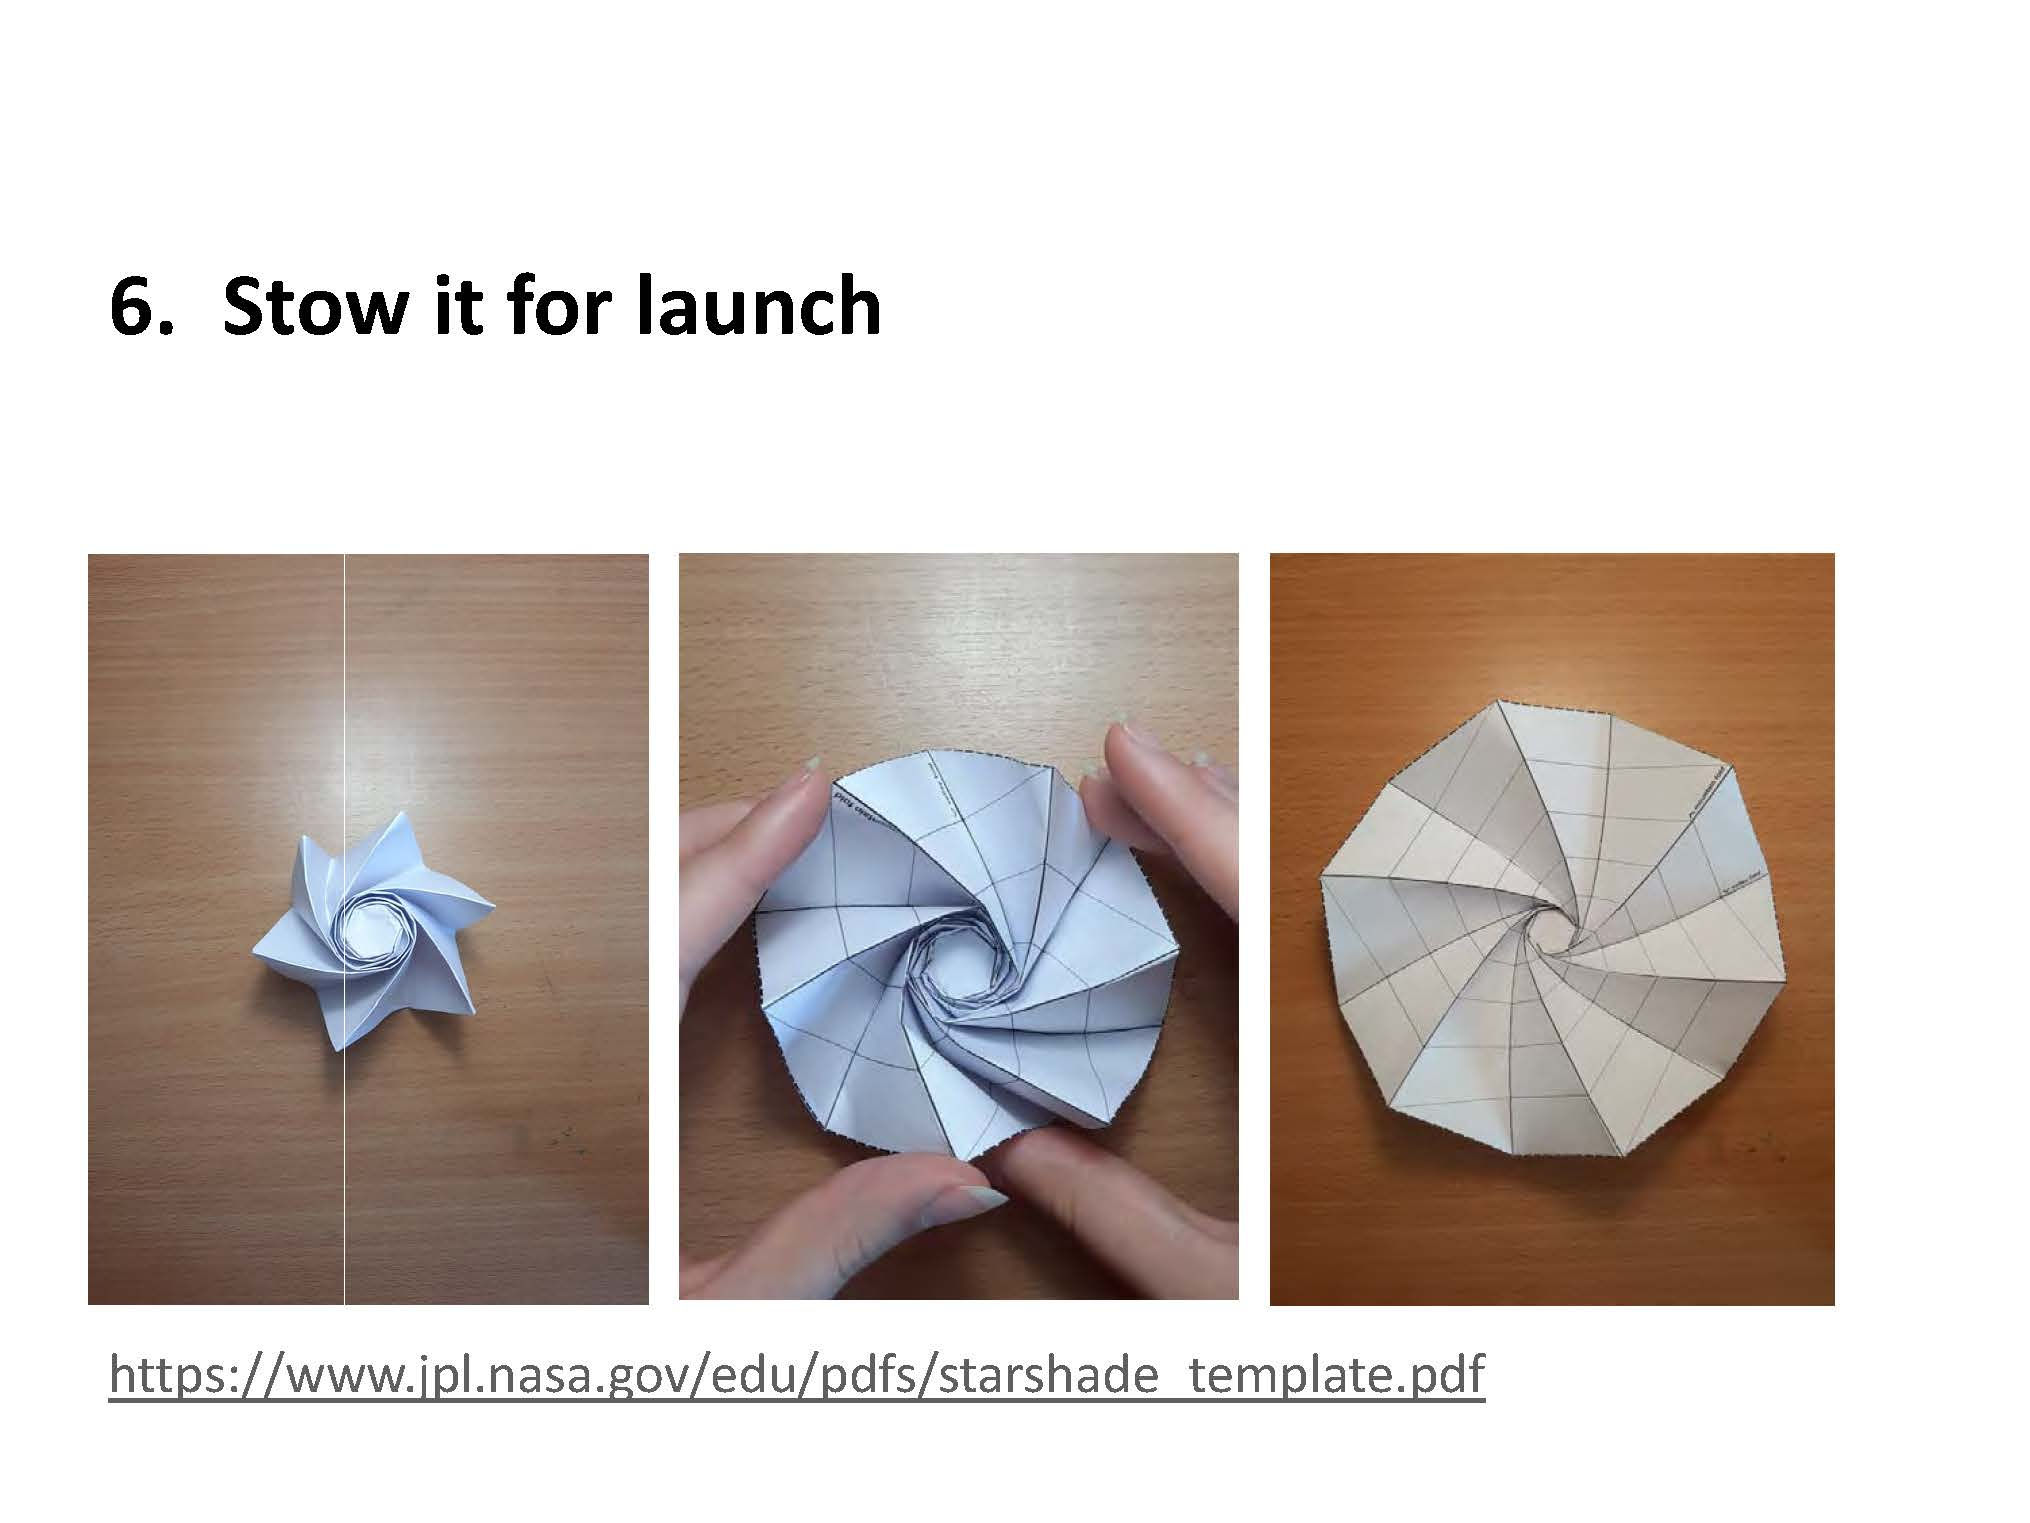 Origami-even-in-space-daniele_Page_14